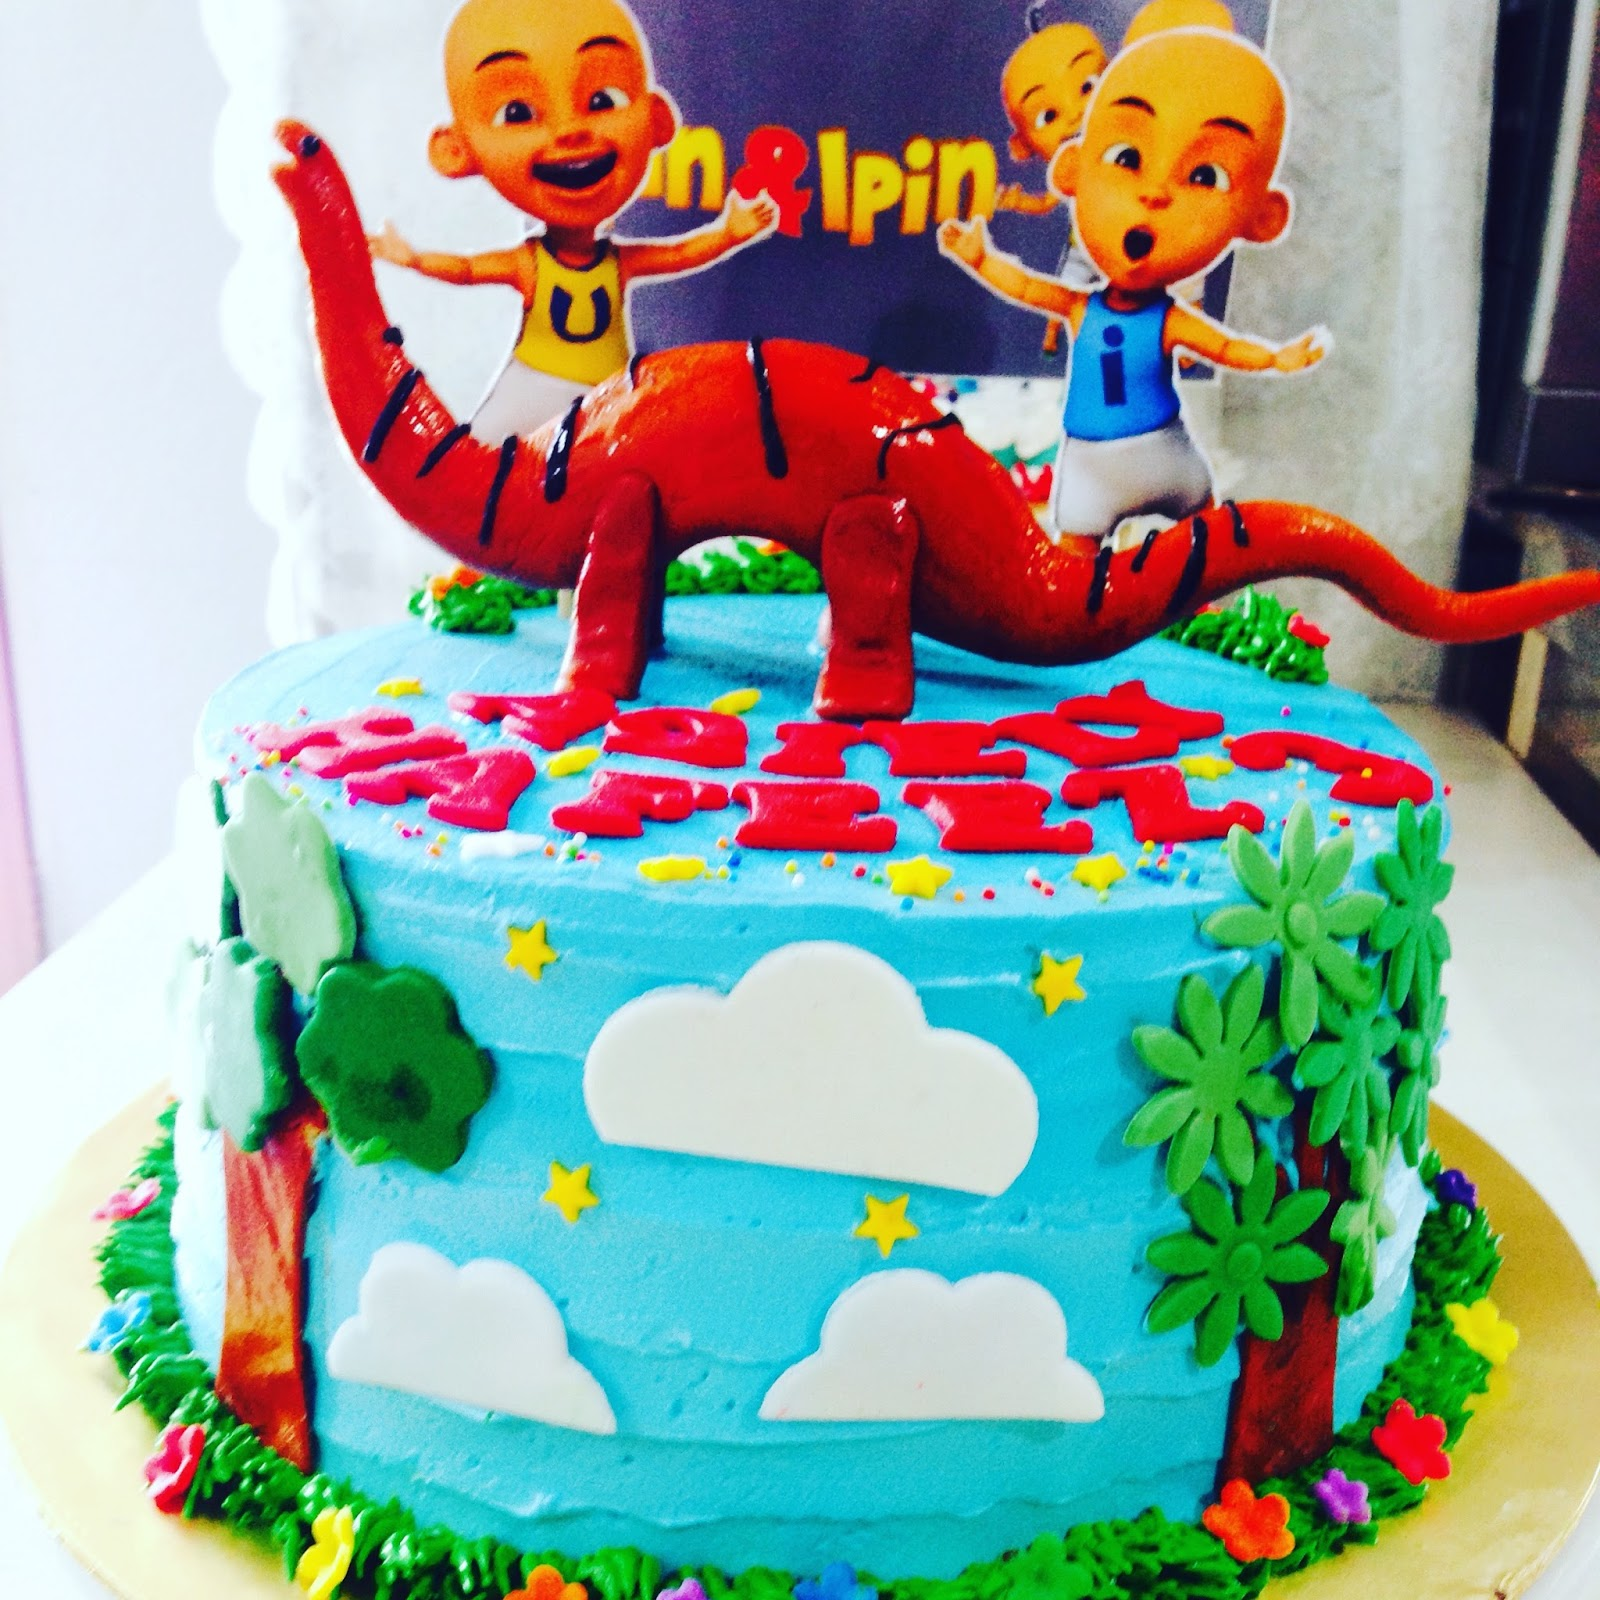 ninie cakes house: Birthday Cakes Upin Ipin VS Dinosour